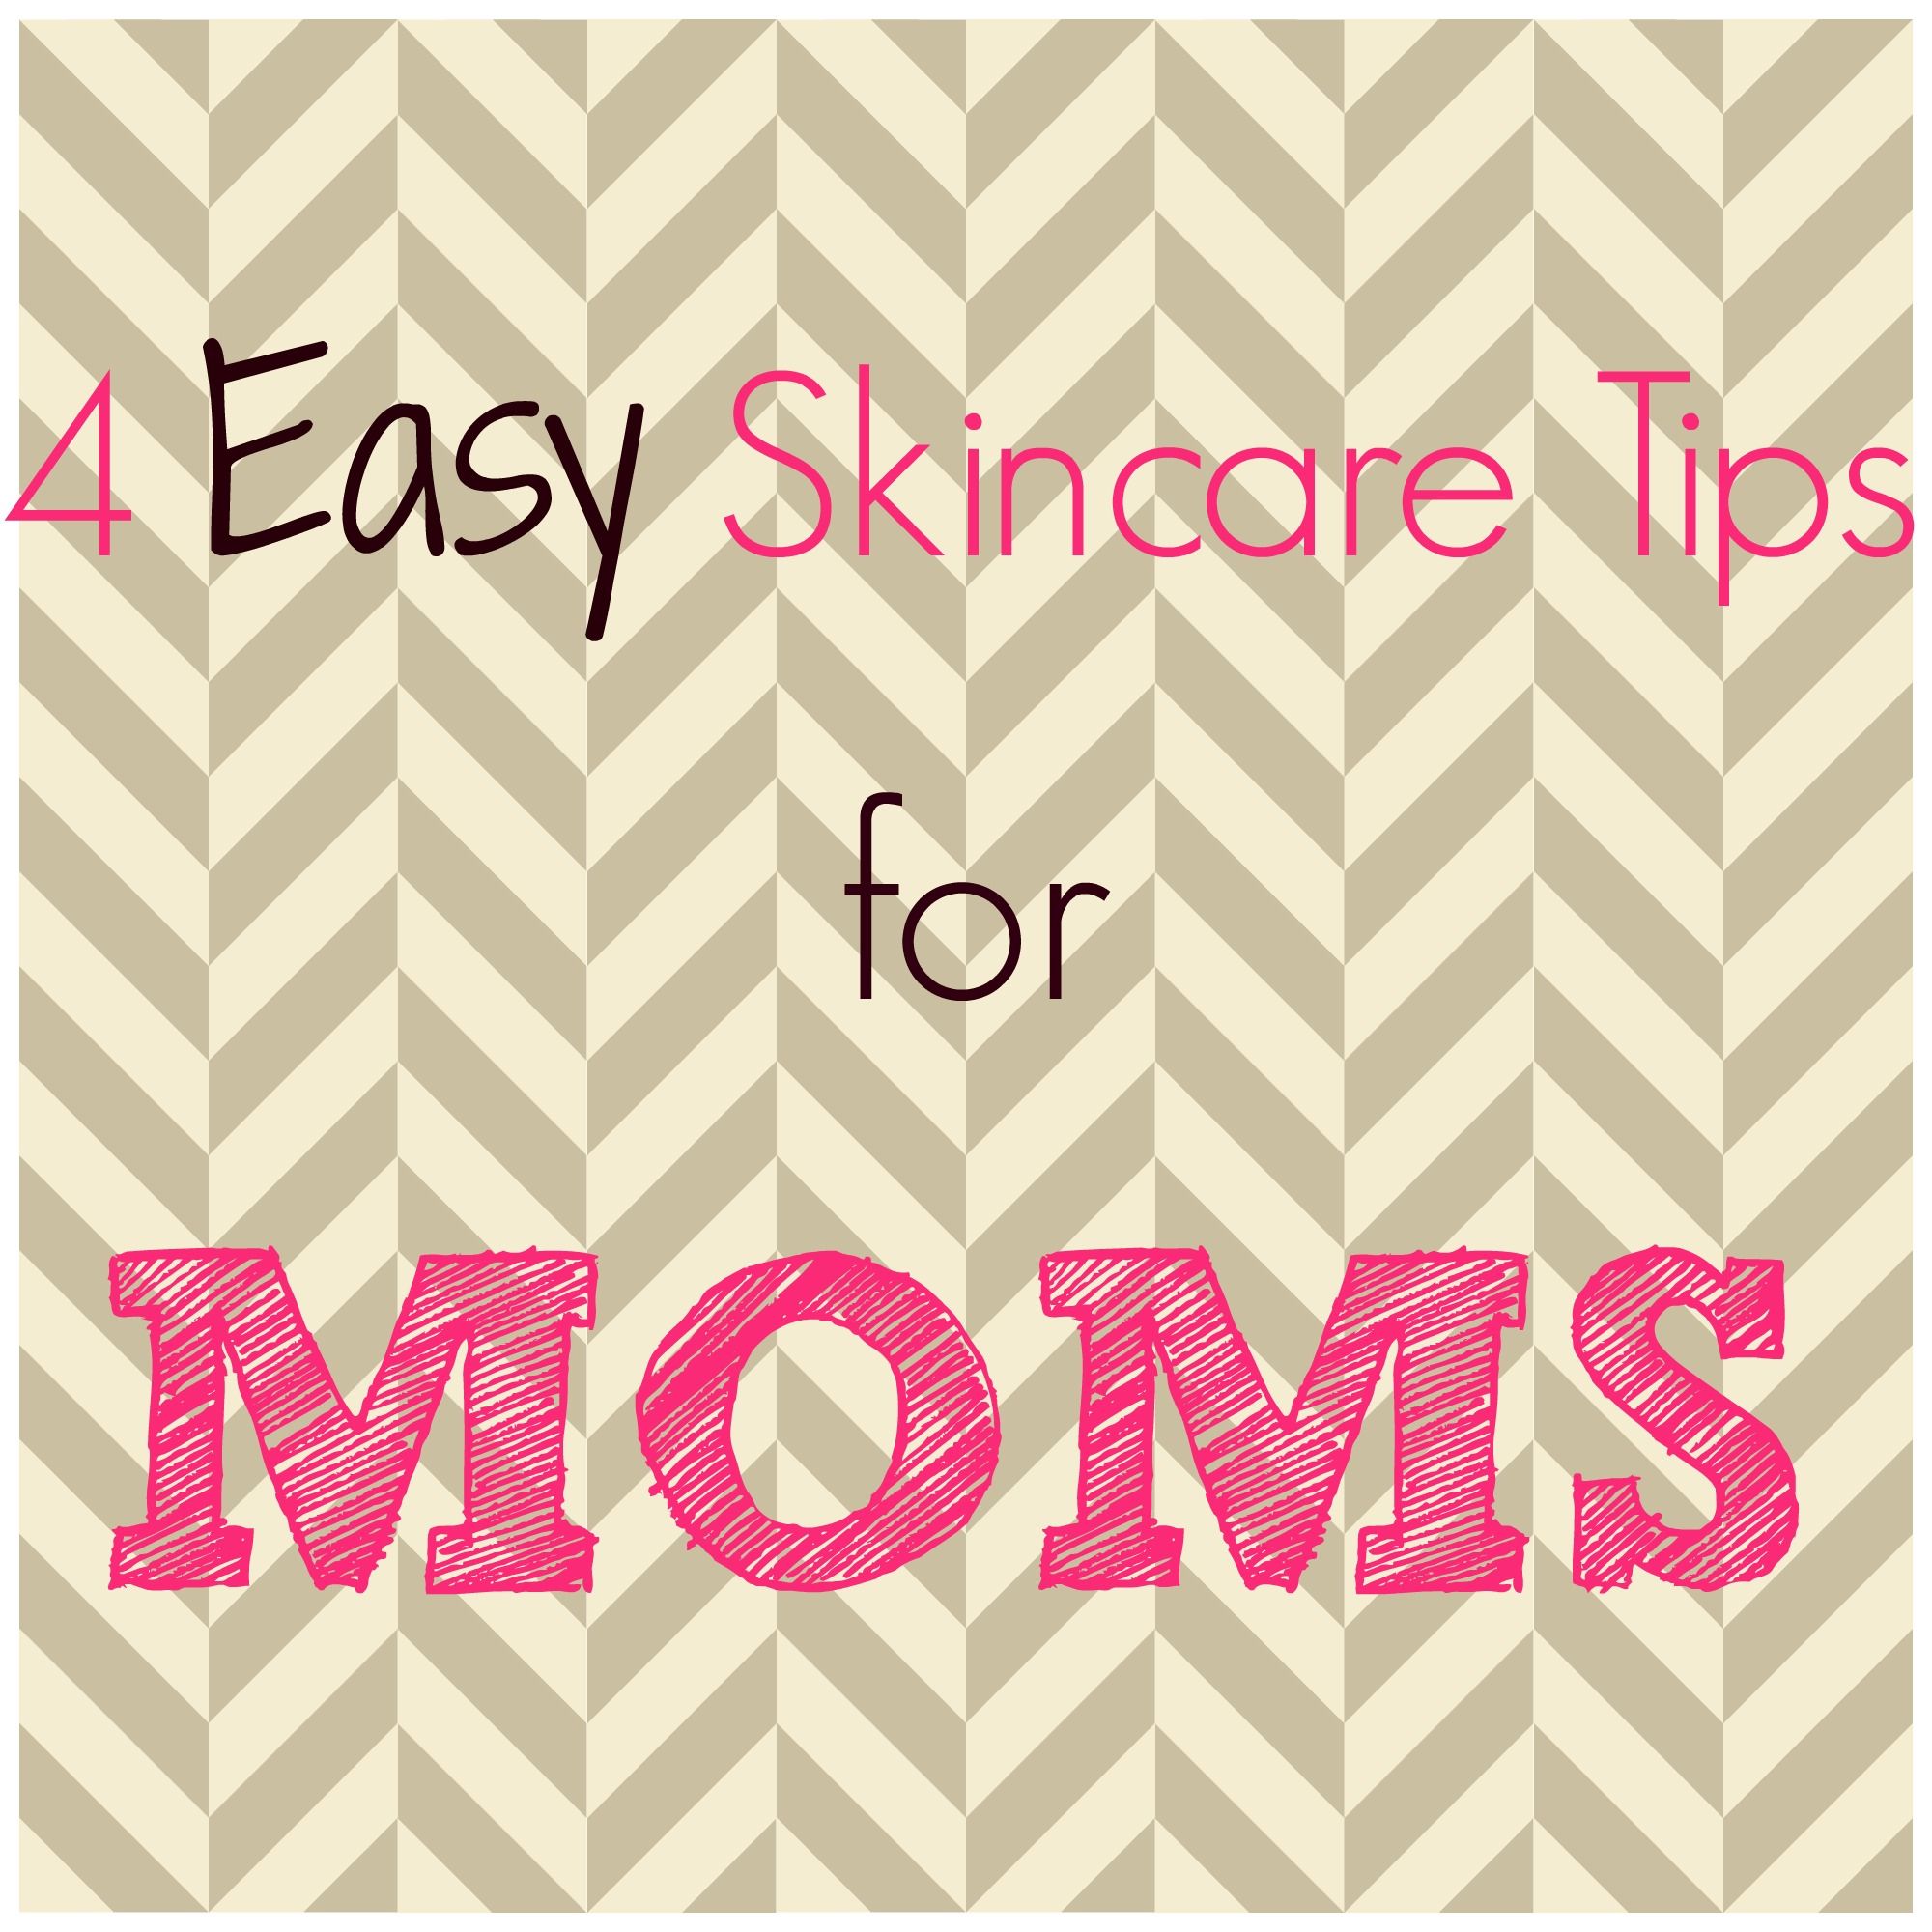 Skin Care Tips for Moms and Women on the Go - Unlikely Martha